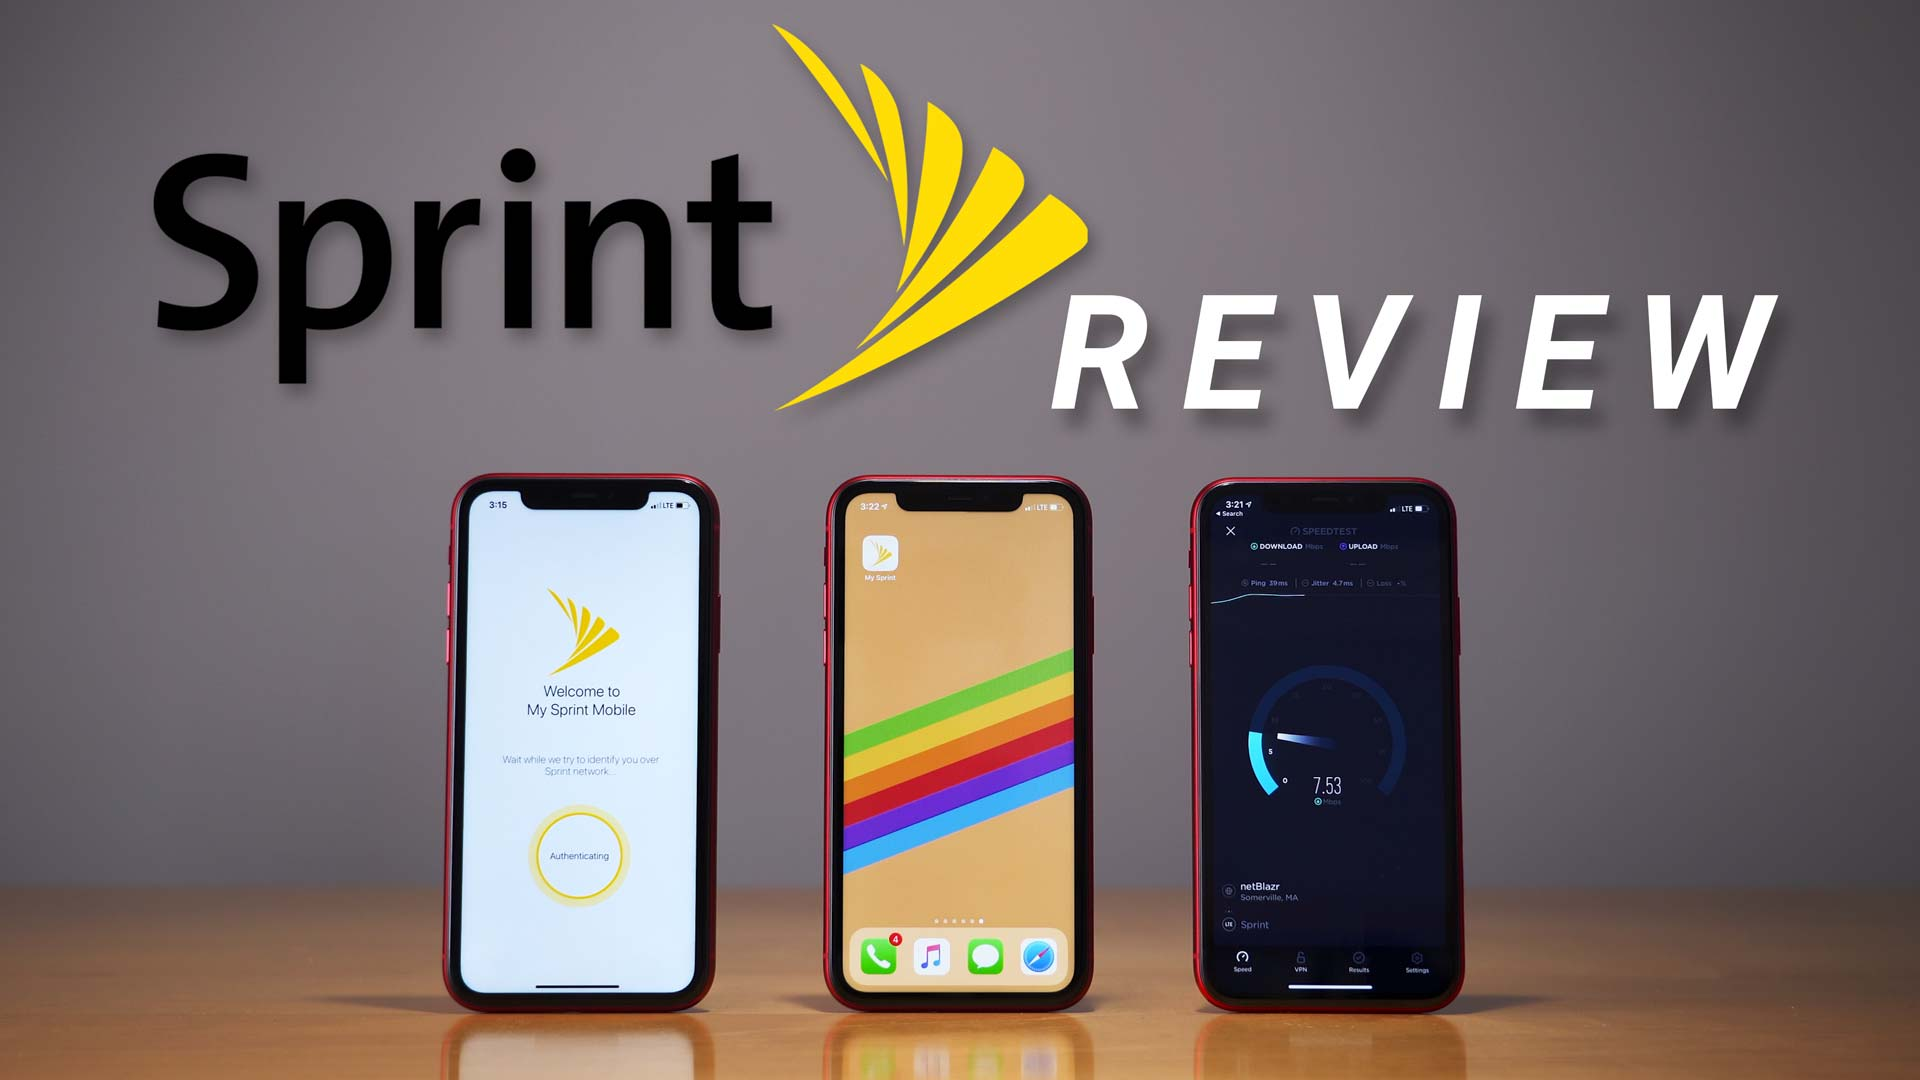 iPhone 11 open to My Sprint app page and another iPhone 11 performing a data speed test on Sprint